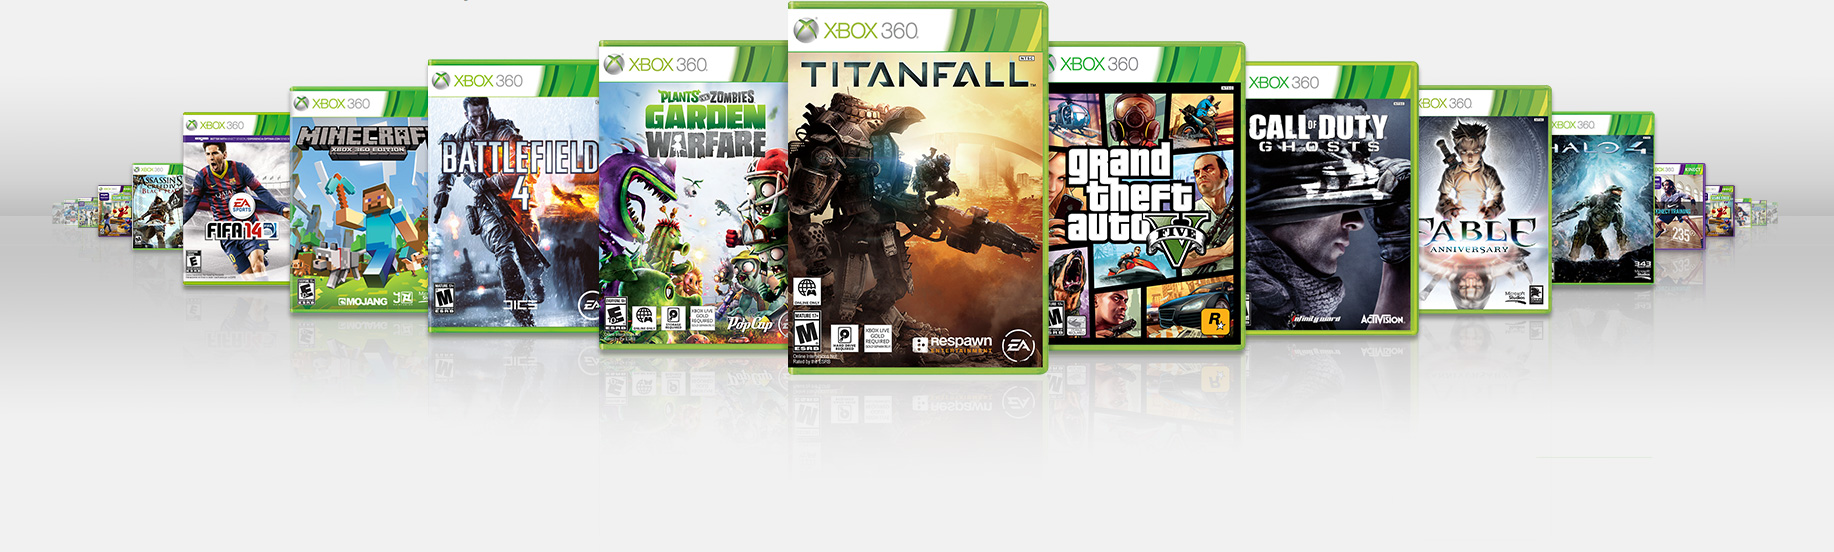 Xbox 360 has thousands of games.